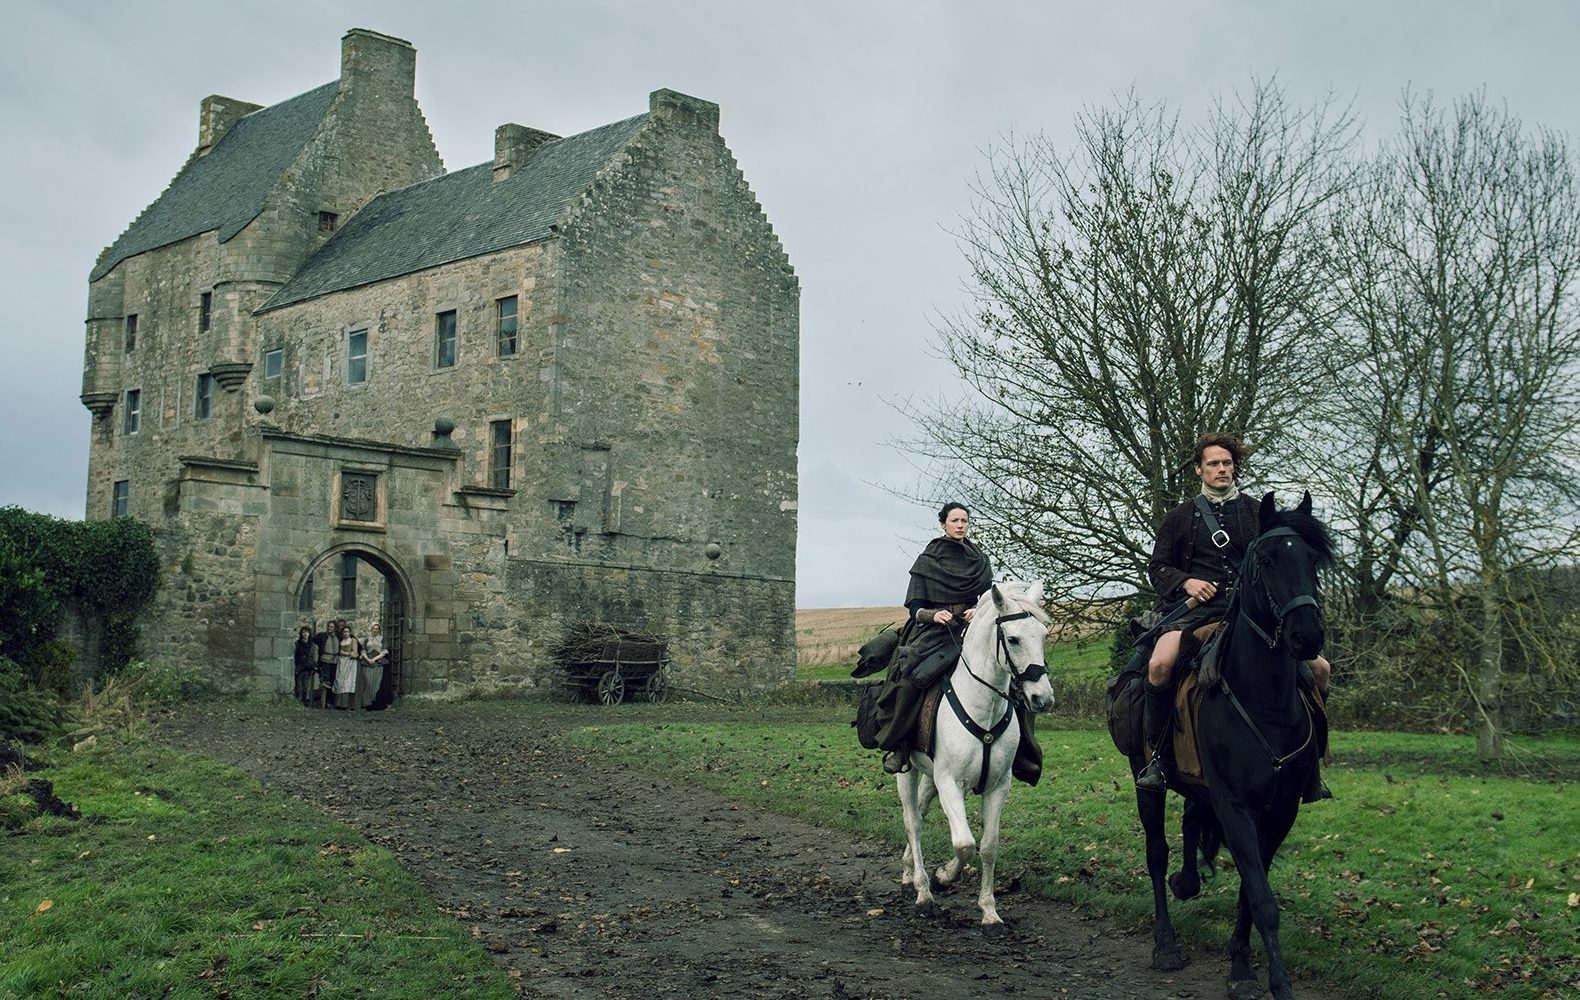 Lallybroch castle is one of the main tourism hotspots in Scotland fuelled by Outlander.